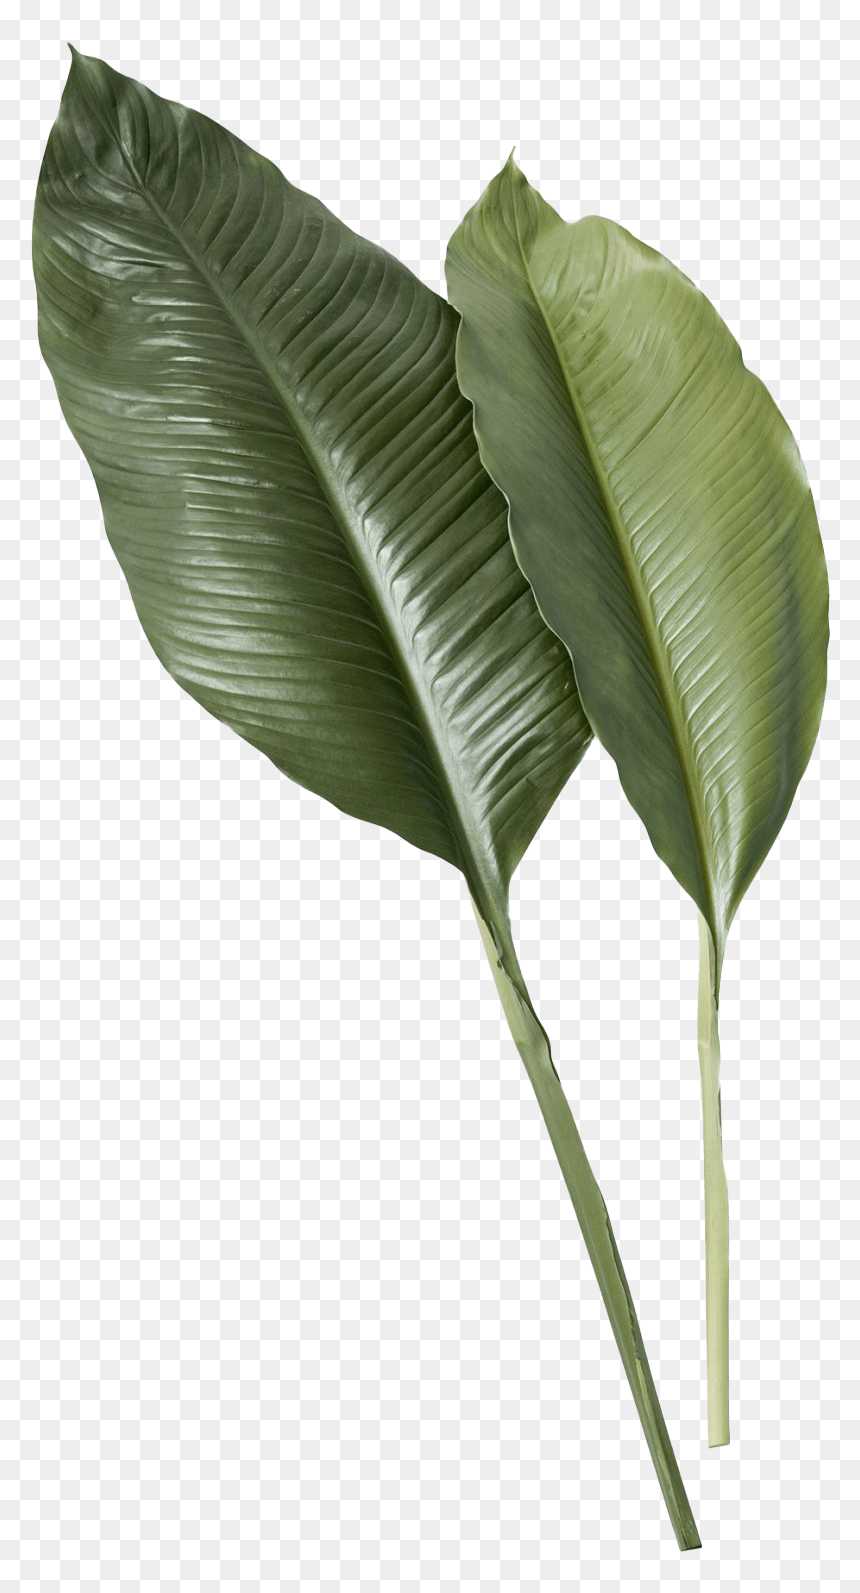 Leaf Png Image Transparent Tropical Leaves Png Png Download Vhv Large collections of hd transparent tropical leaves png images for free download. leaf png image transparent tropical